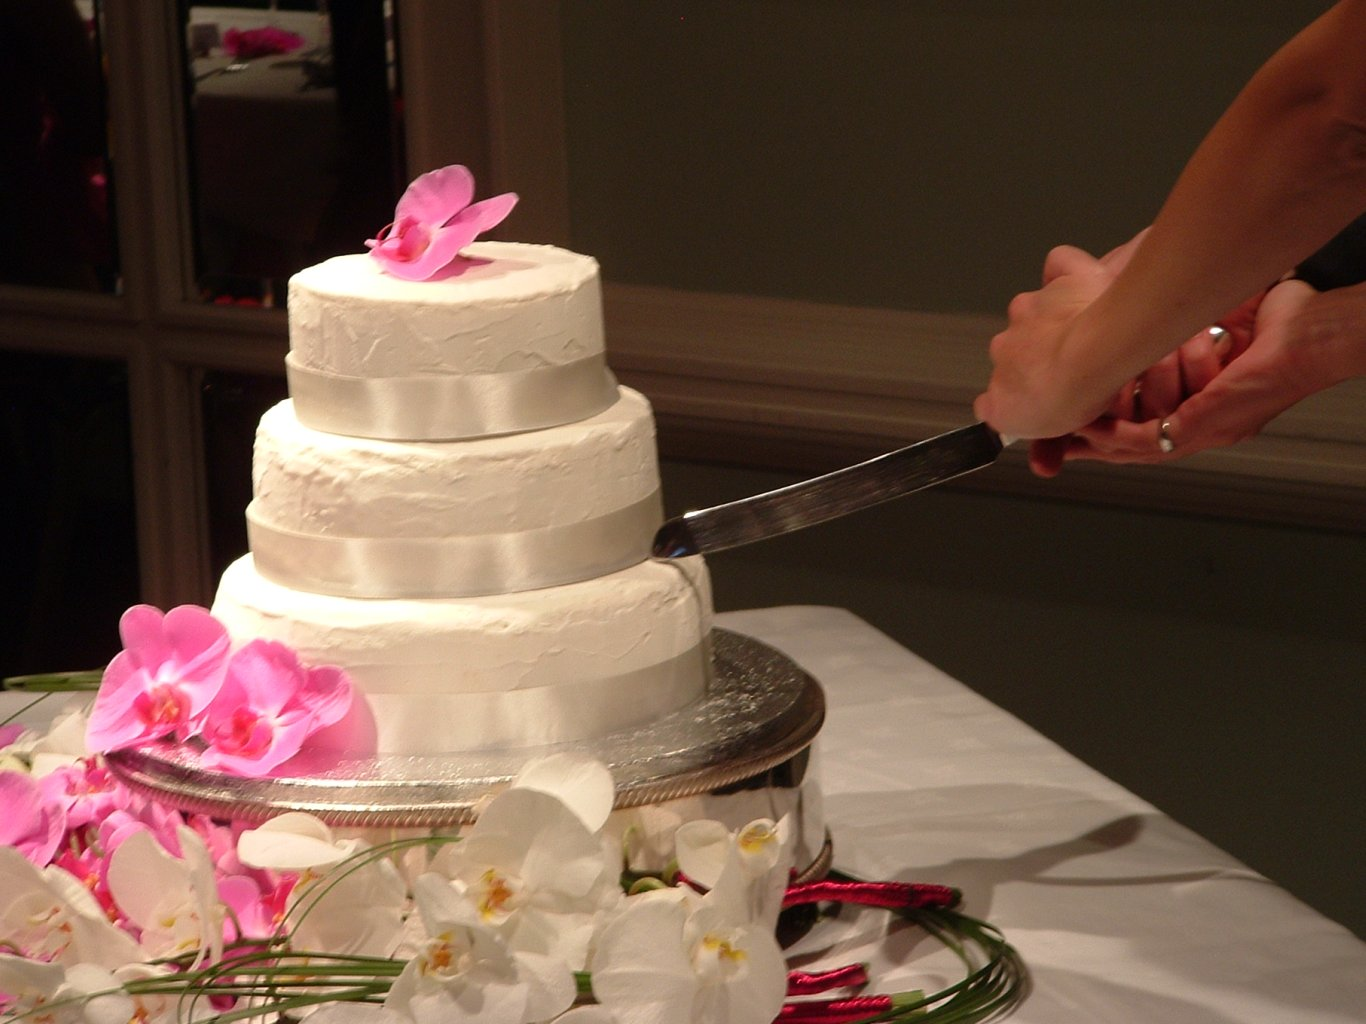 cutting the cake flickr photo sharing. Black Bedroom Furniture Sets. Home Design Ideas